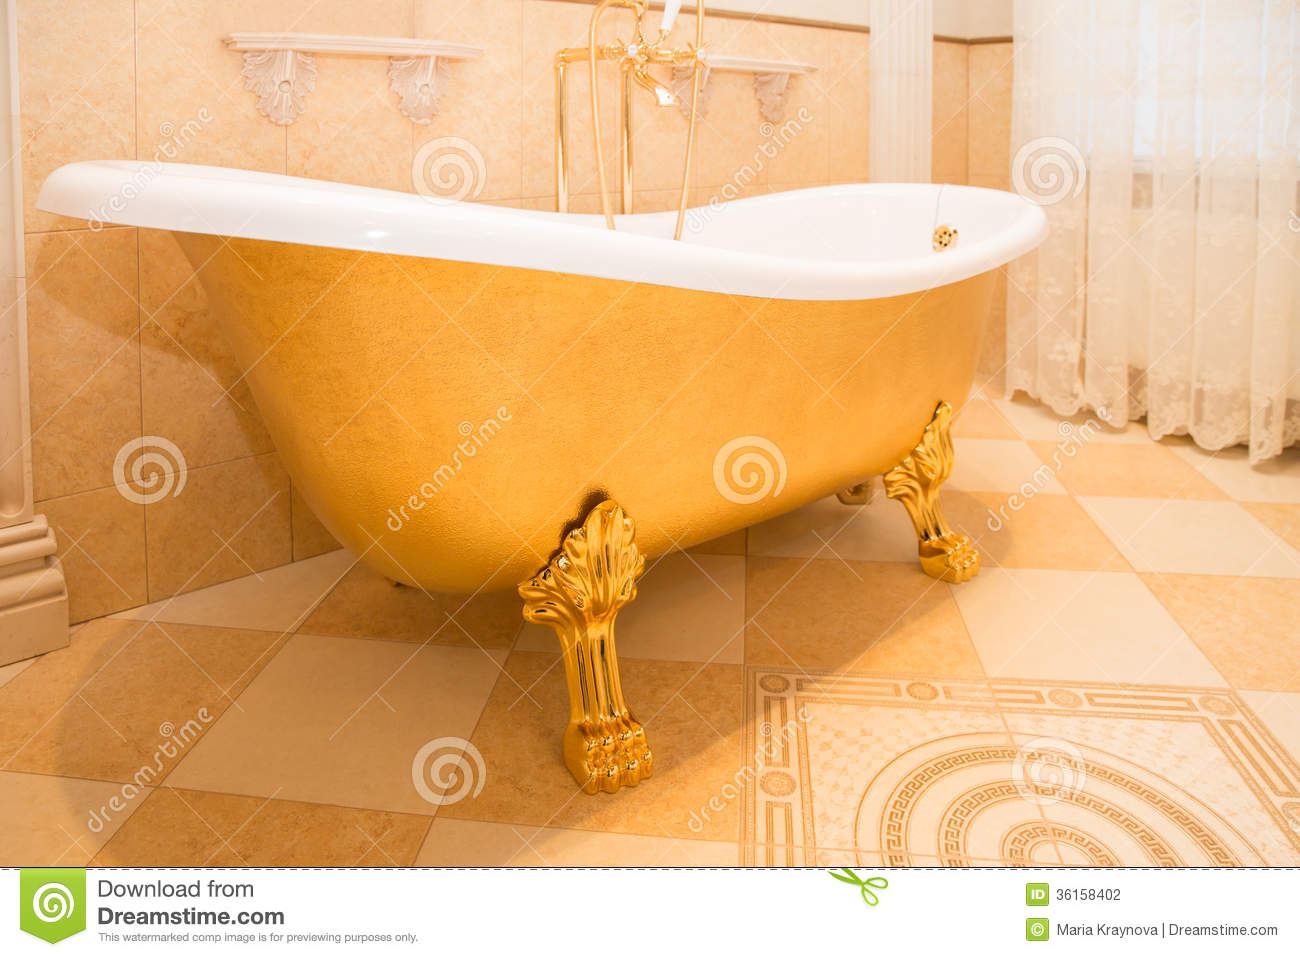 Bathtub stock photo. Image of indoors, decor, gold, bath - 36158402